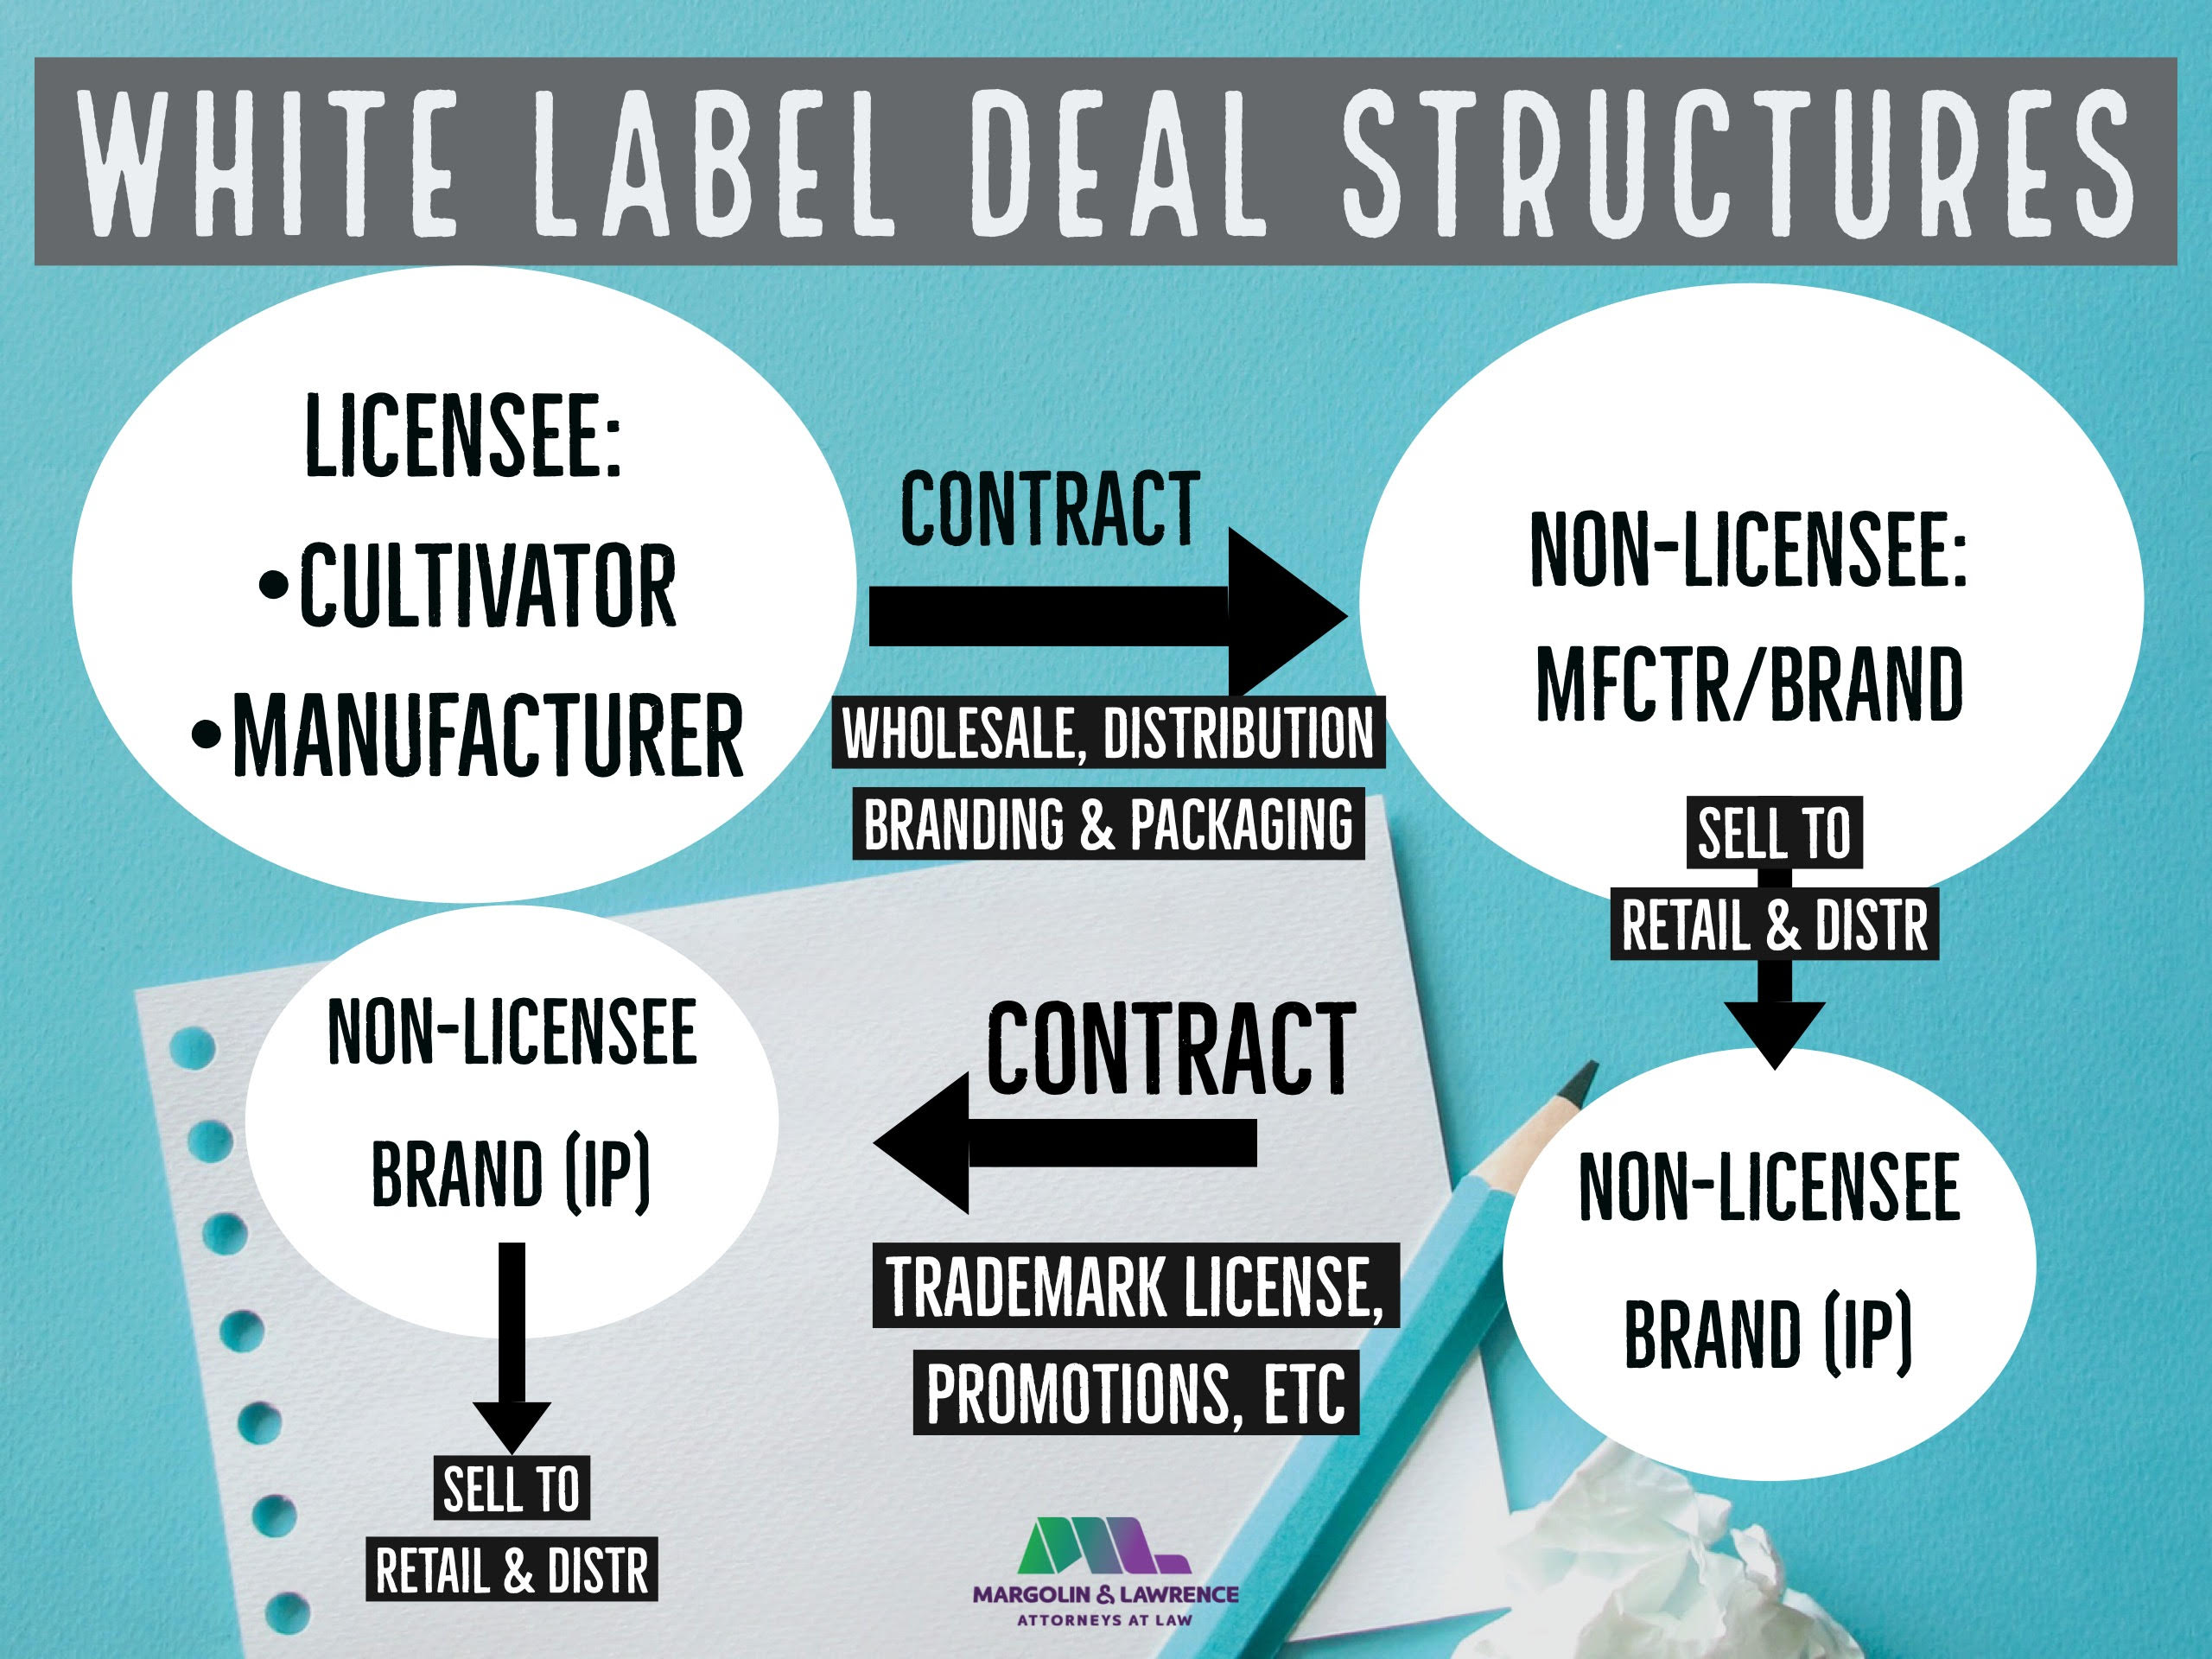 White Label Deal Structures